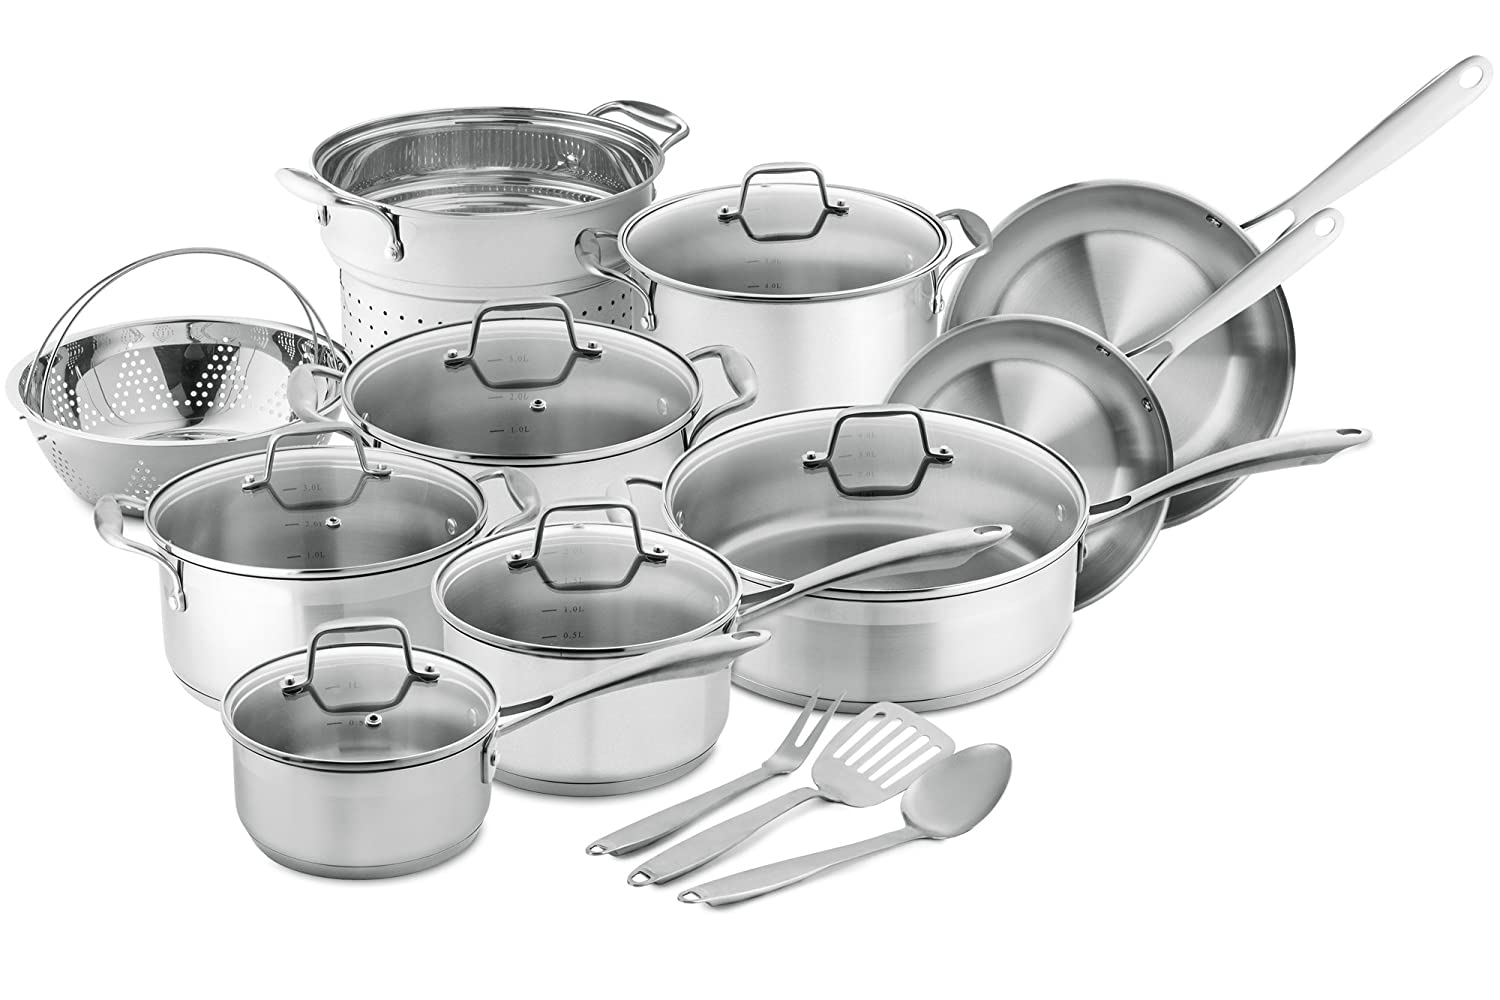 Chef's Star Professional Stainless steel 17-piece Cookware set